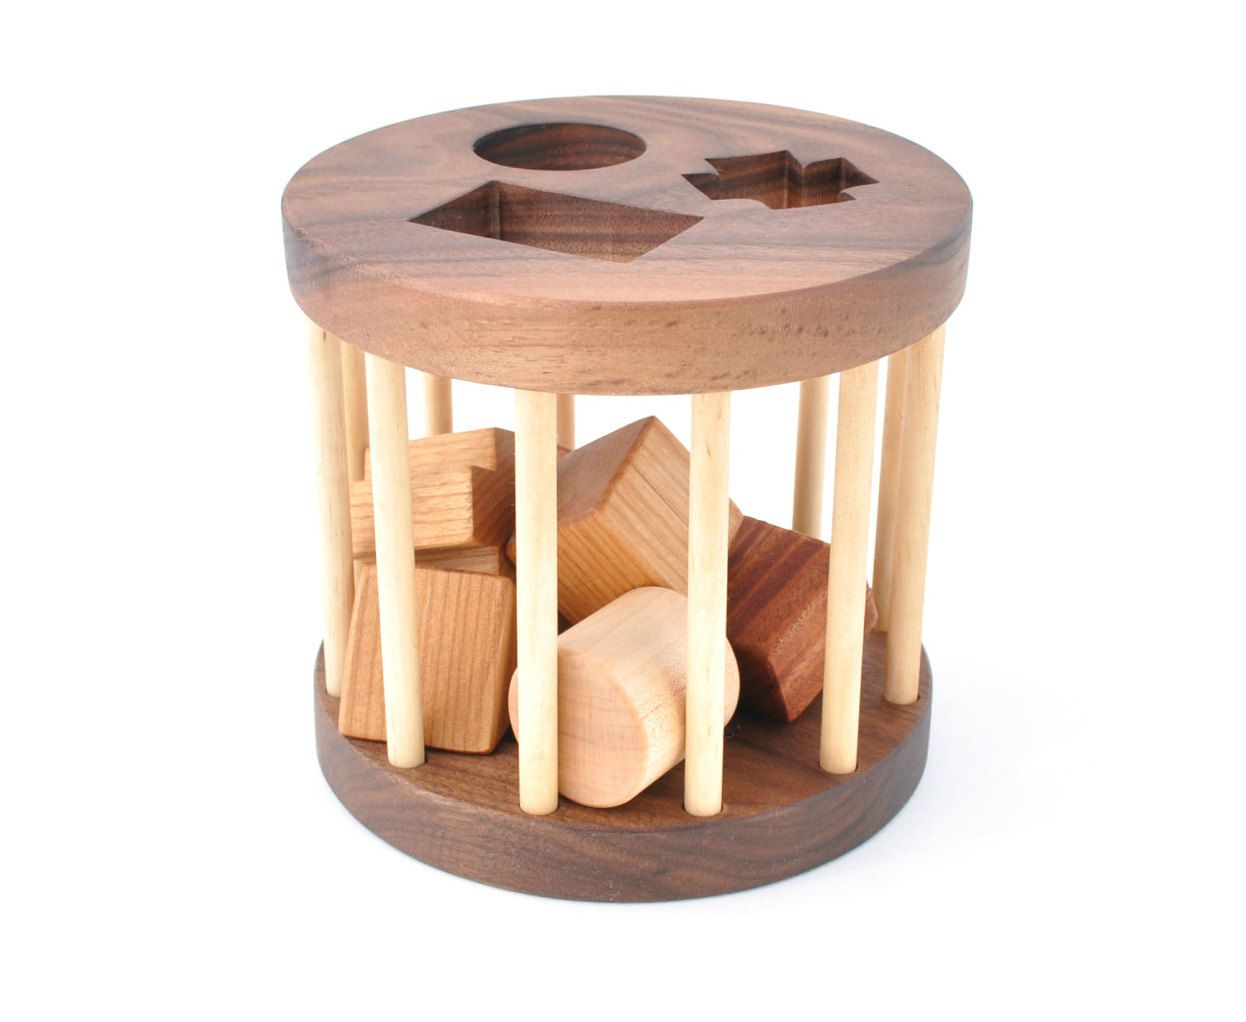 Wooden Toys For Pre School : Wooden shape sorter toy montessori inspired educational